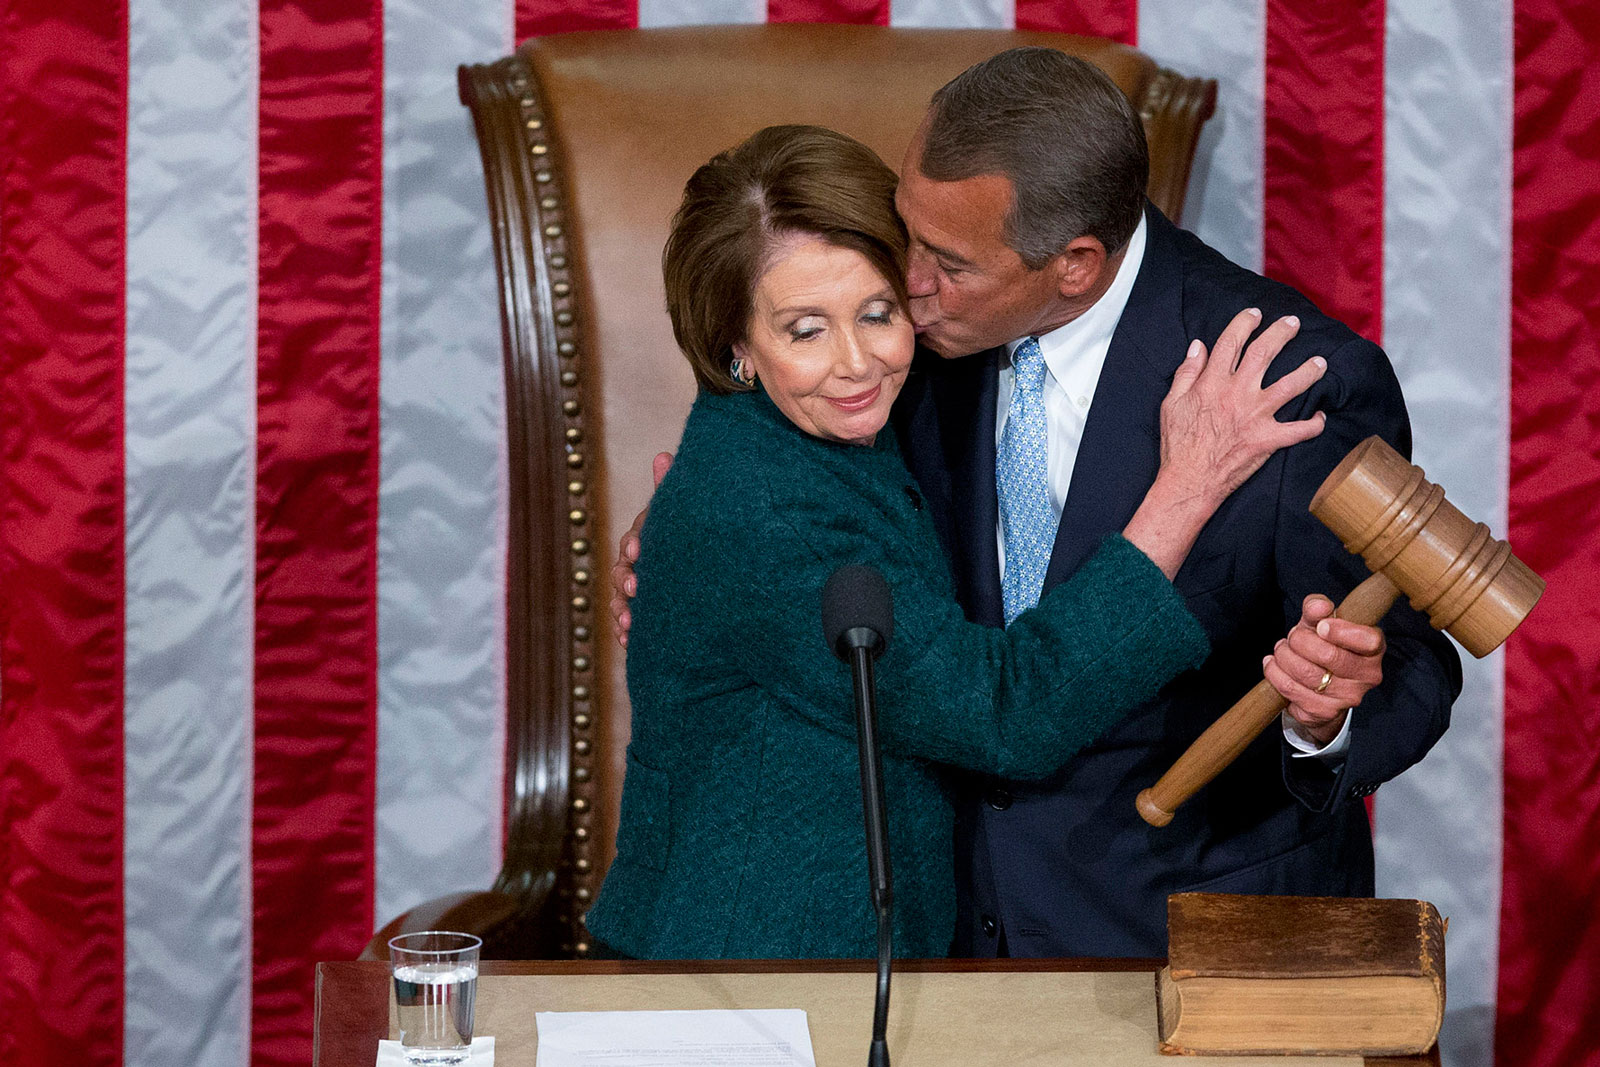 U.S. House Speaker John Boehner (R-Ohio), right, kisses U.S. House Minority Leader Nancy Pelosi (D-Calif.) after she passed him the gavel during the first session of the 114th Congress in the House Chamber at the U.S. Capitol in Washington on Tuesday, Jan. 6, 2015.